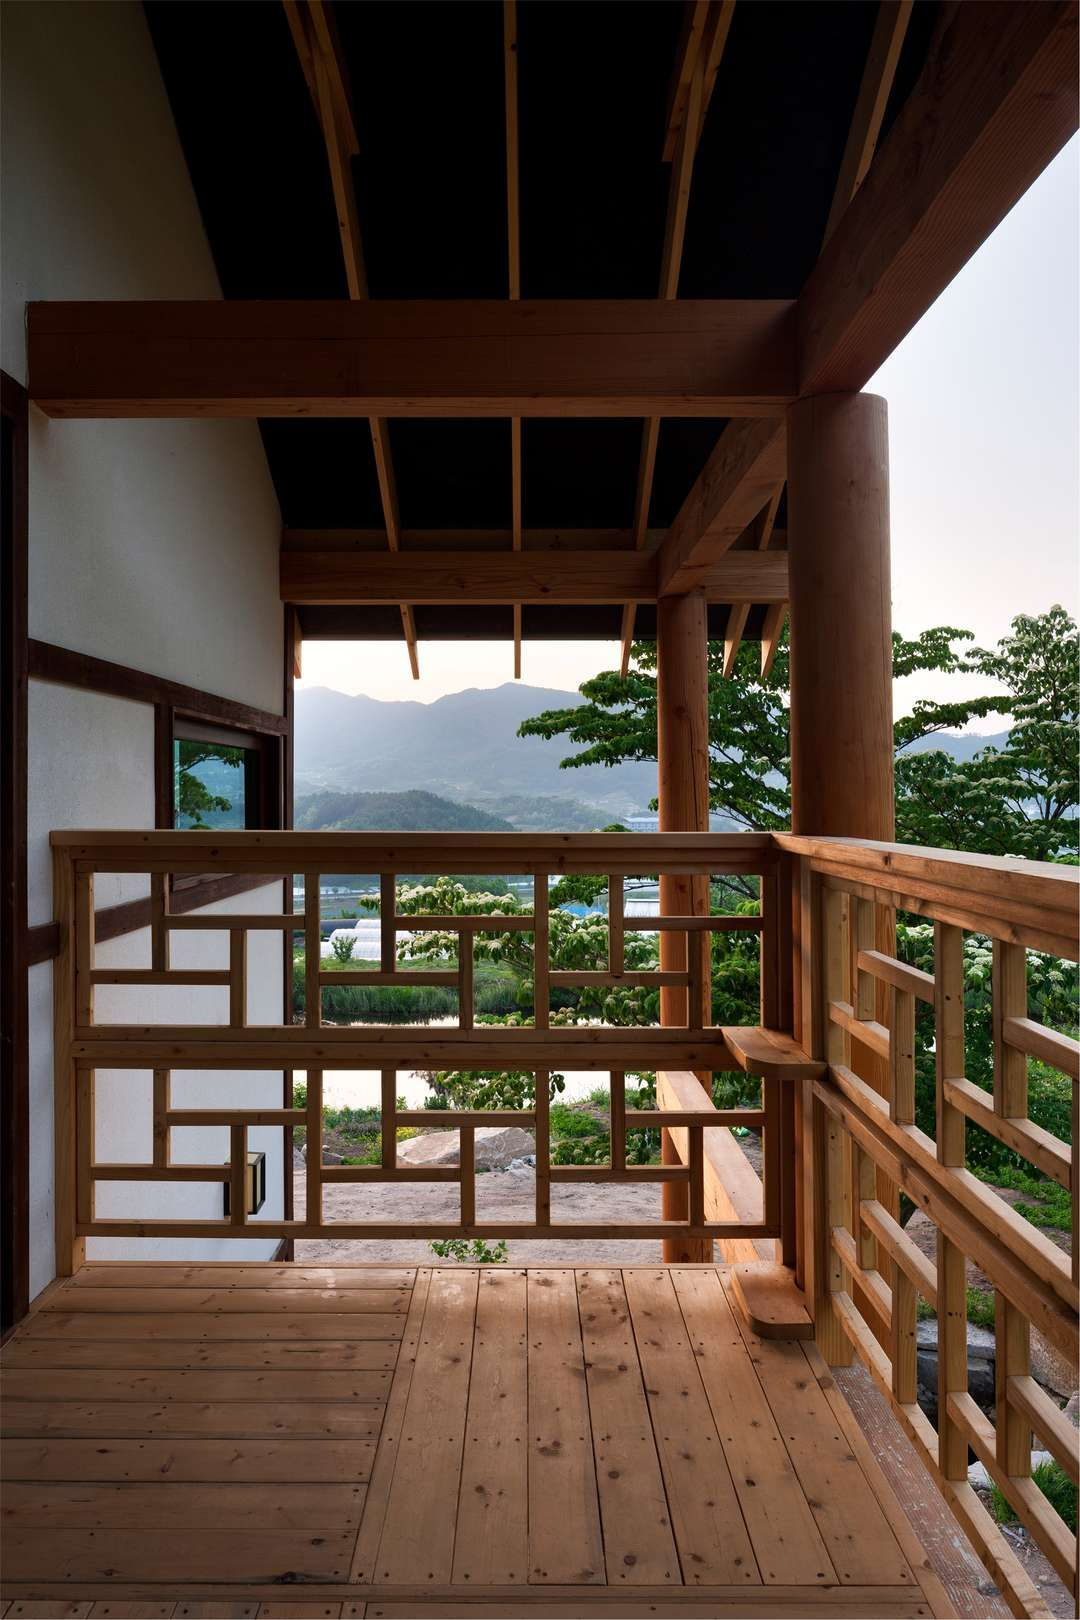 Hanok Is The Term Used To Describe Traditional Korean